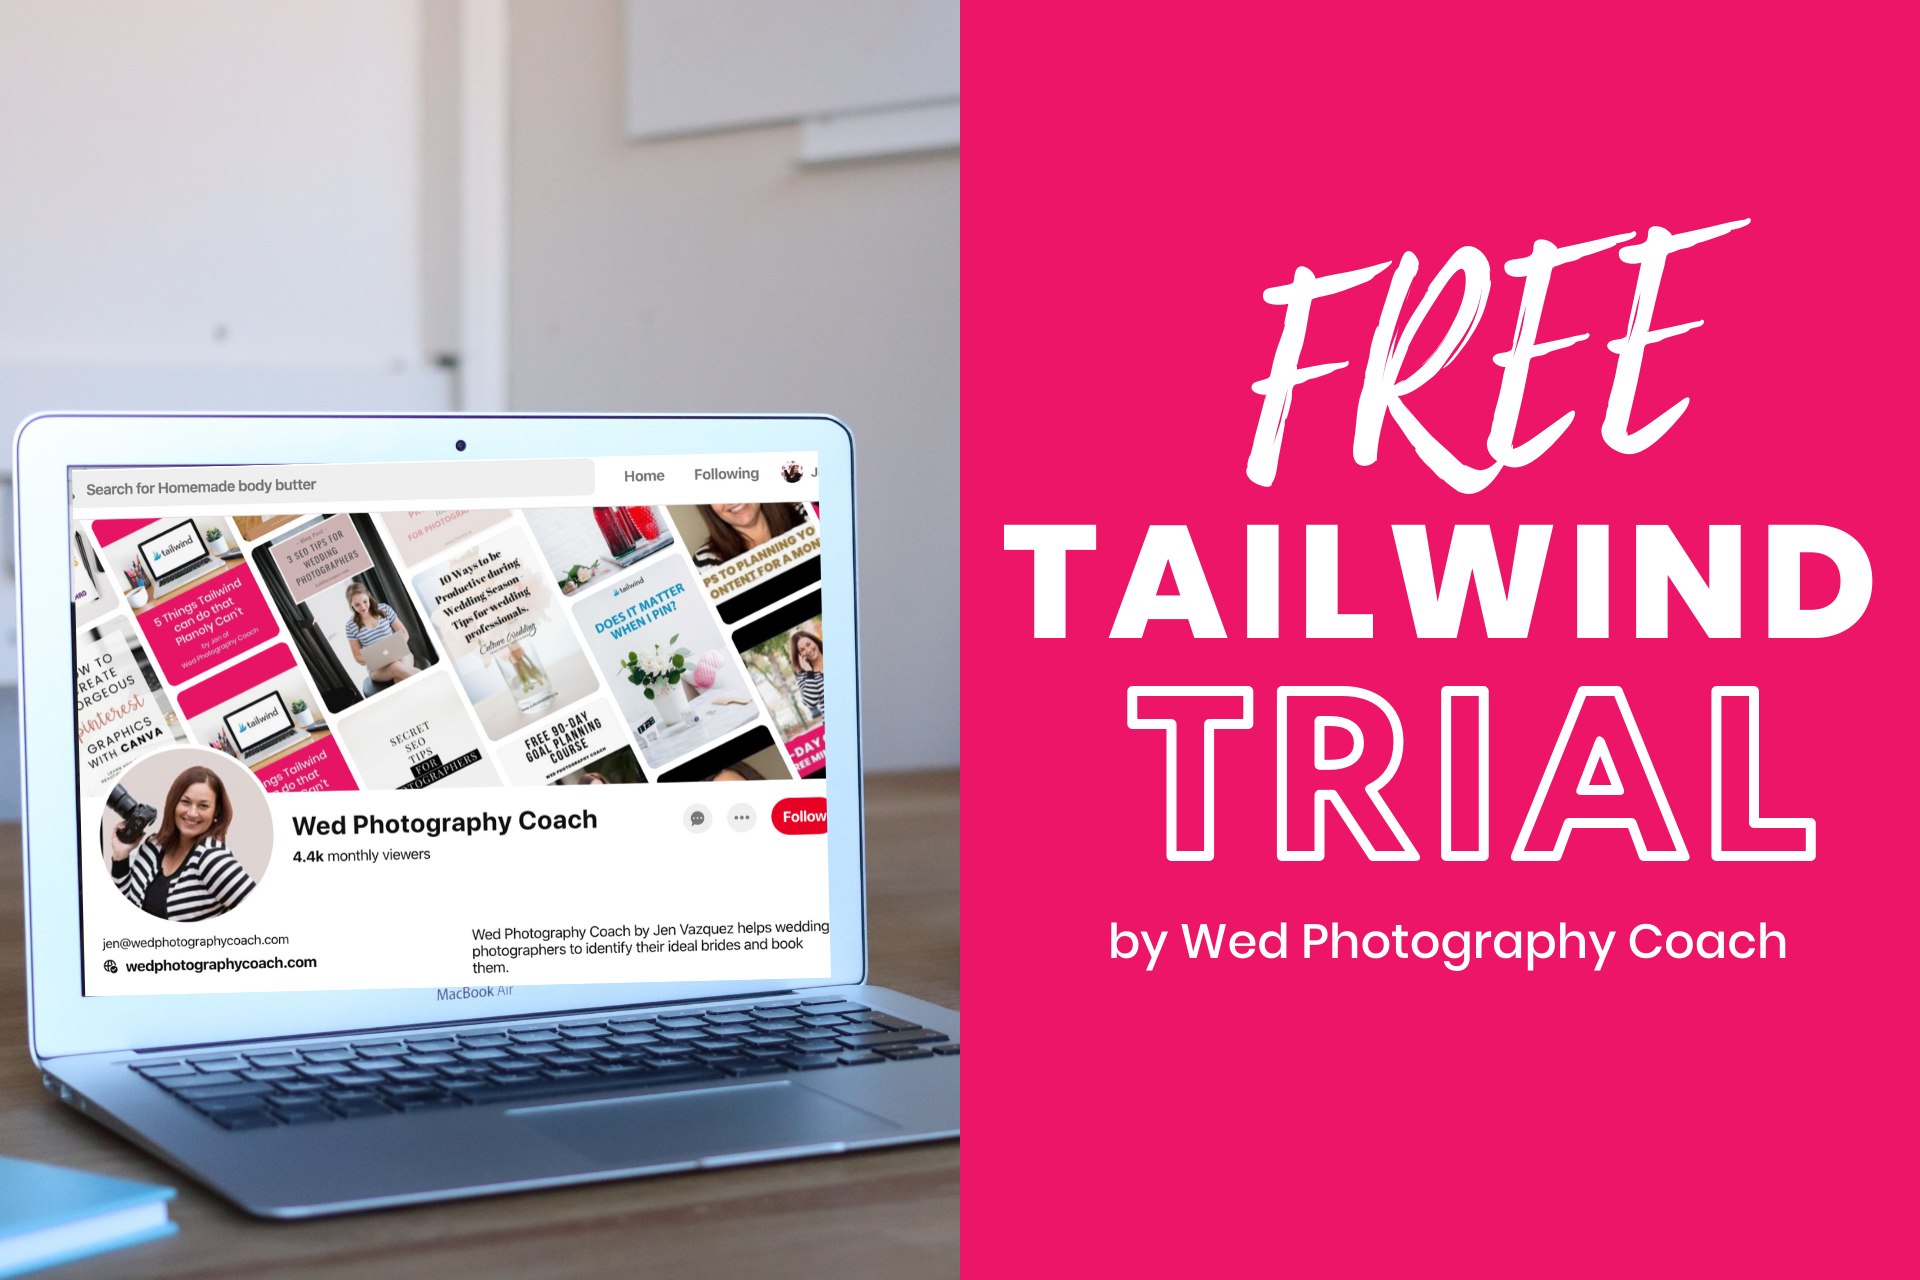 Free Tailwind Trial by wed photography coach